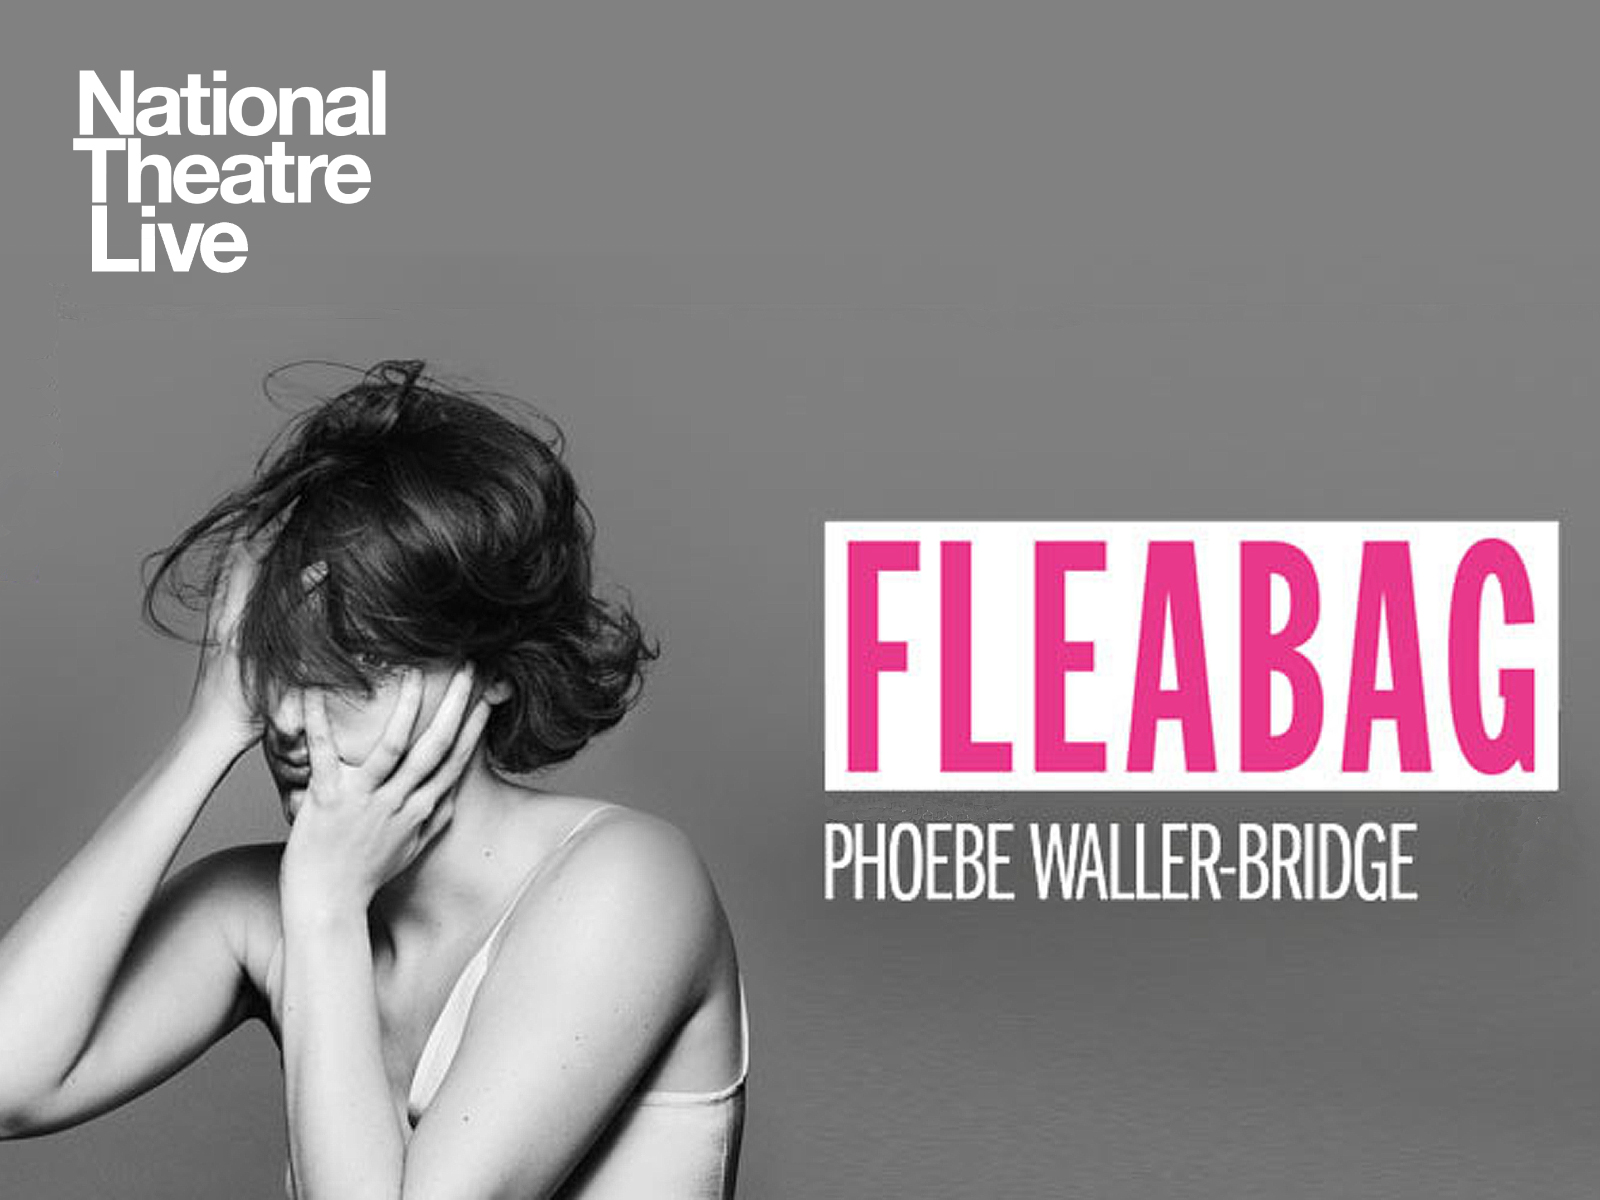 A must see! TV sensation Phoebe Waller-Bridge of Fleabag and Killing Eve fame, performing on-stage in her five-star one-woman play...